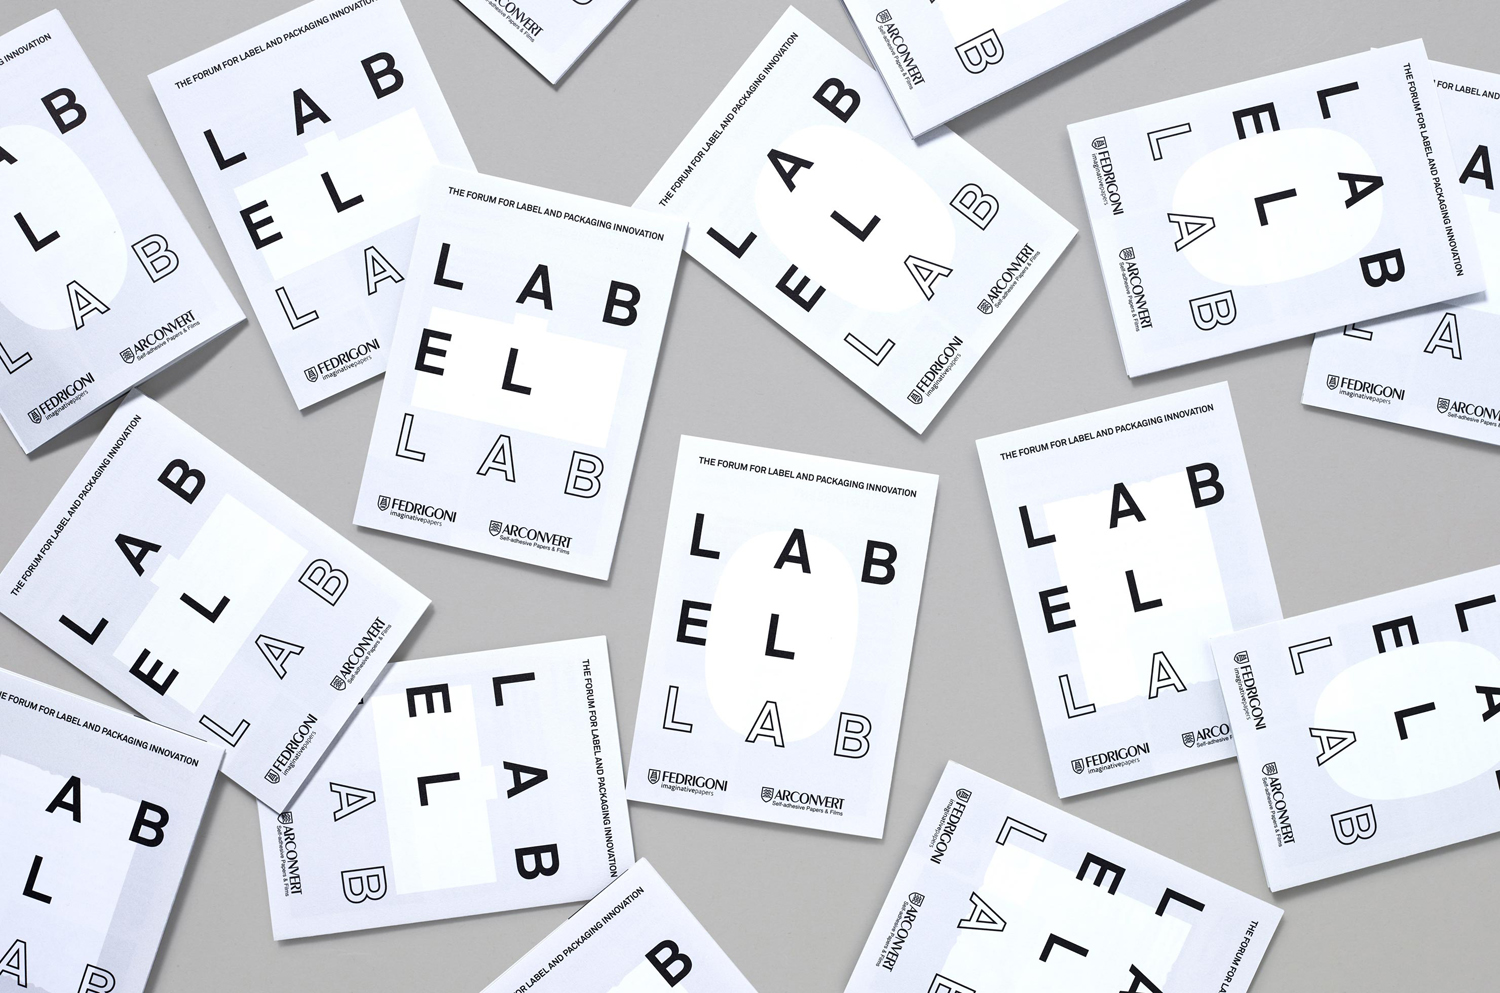 Logotype and programme by TM for Label Lab, The Forum for Label and Packaging Innovation, hosted by Arconvert.